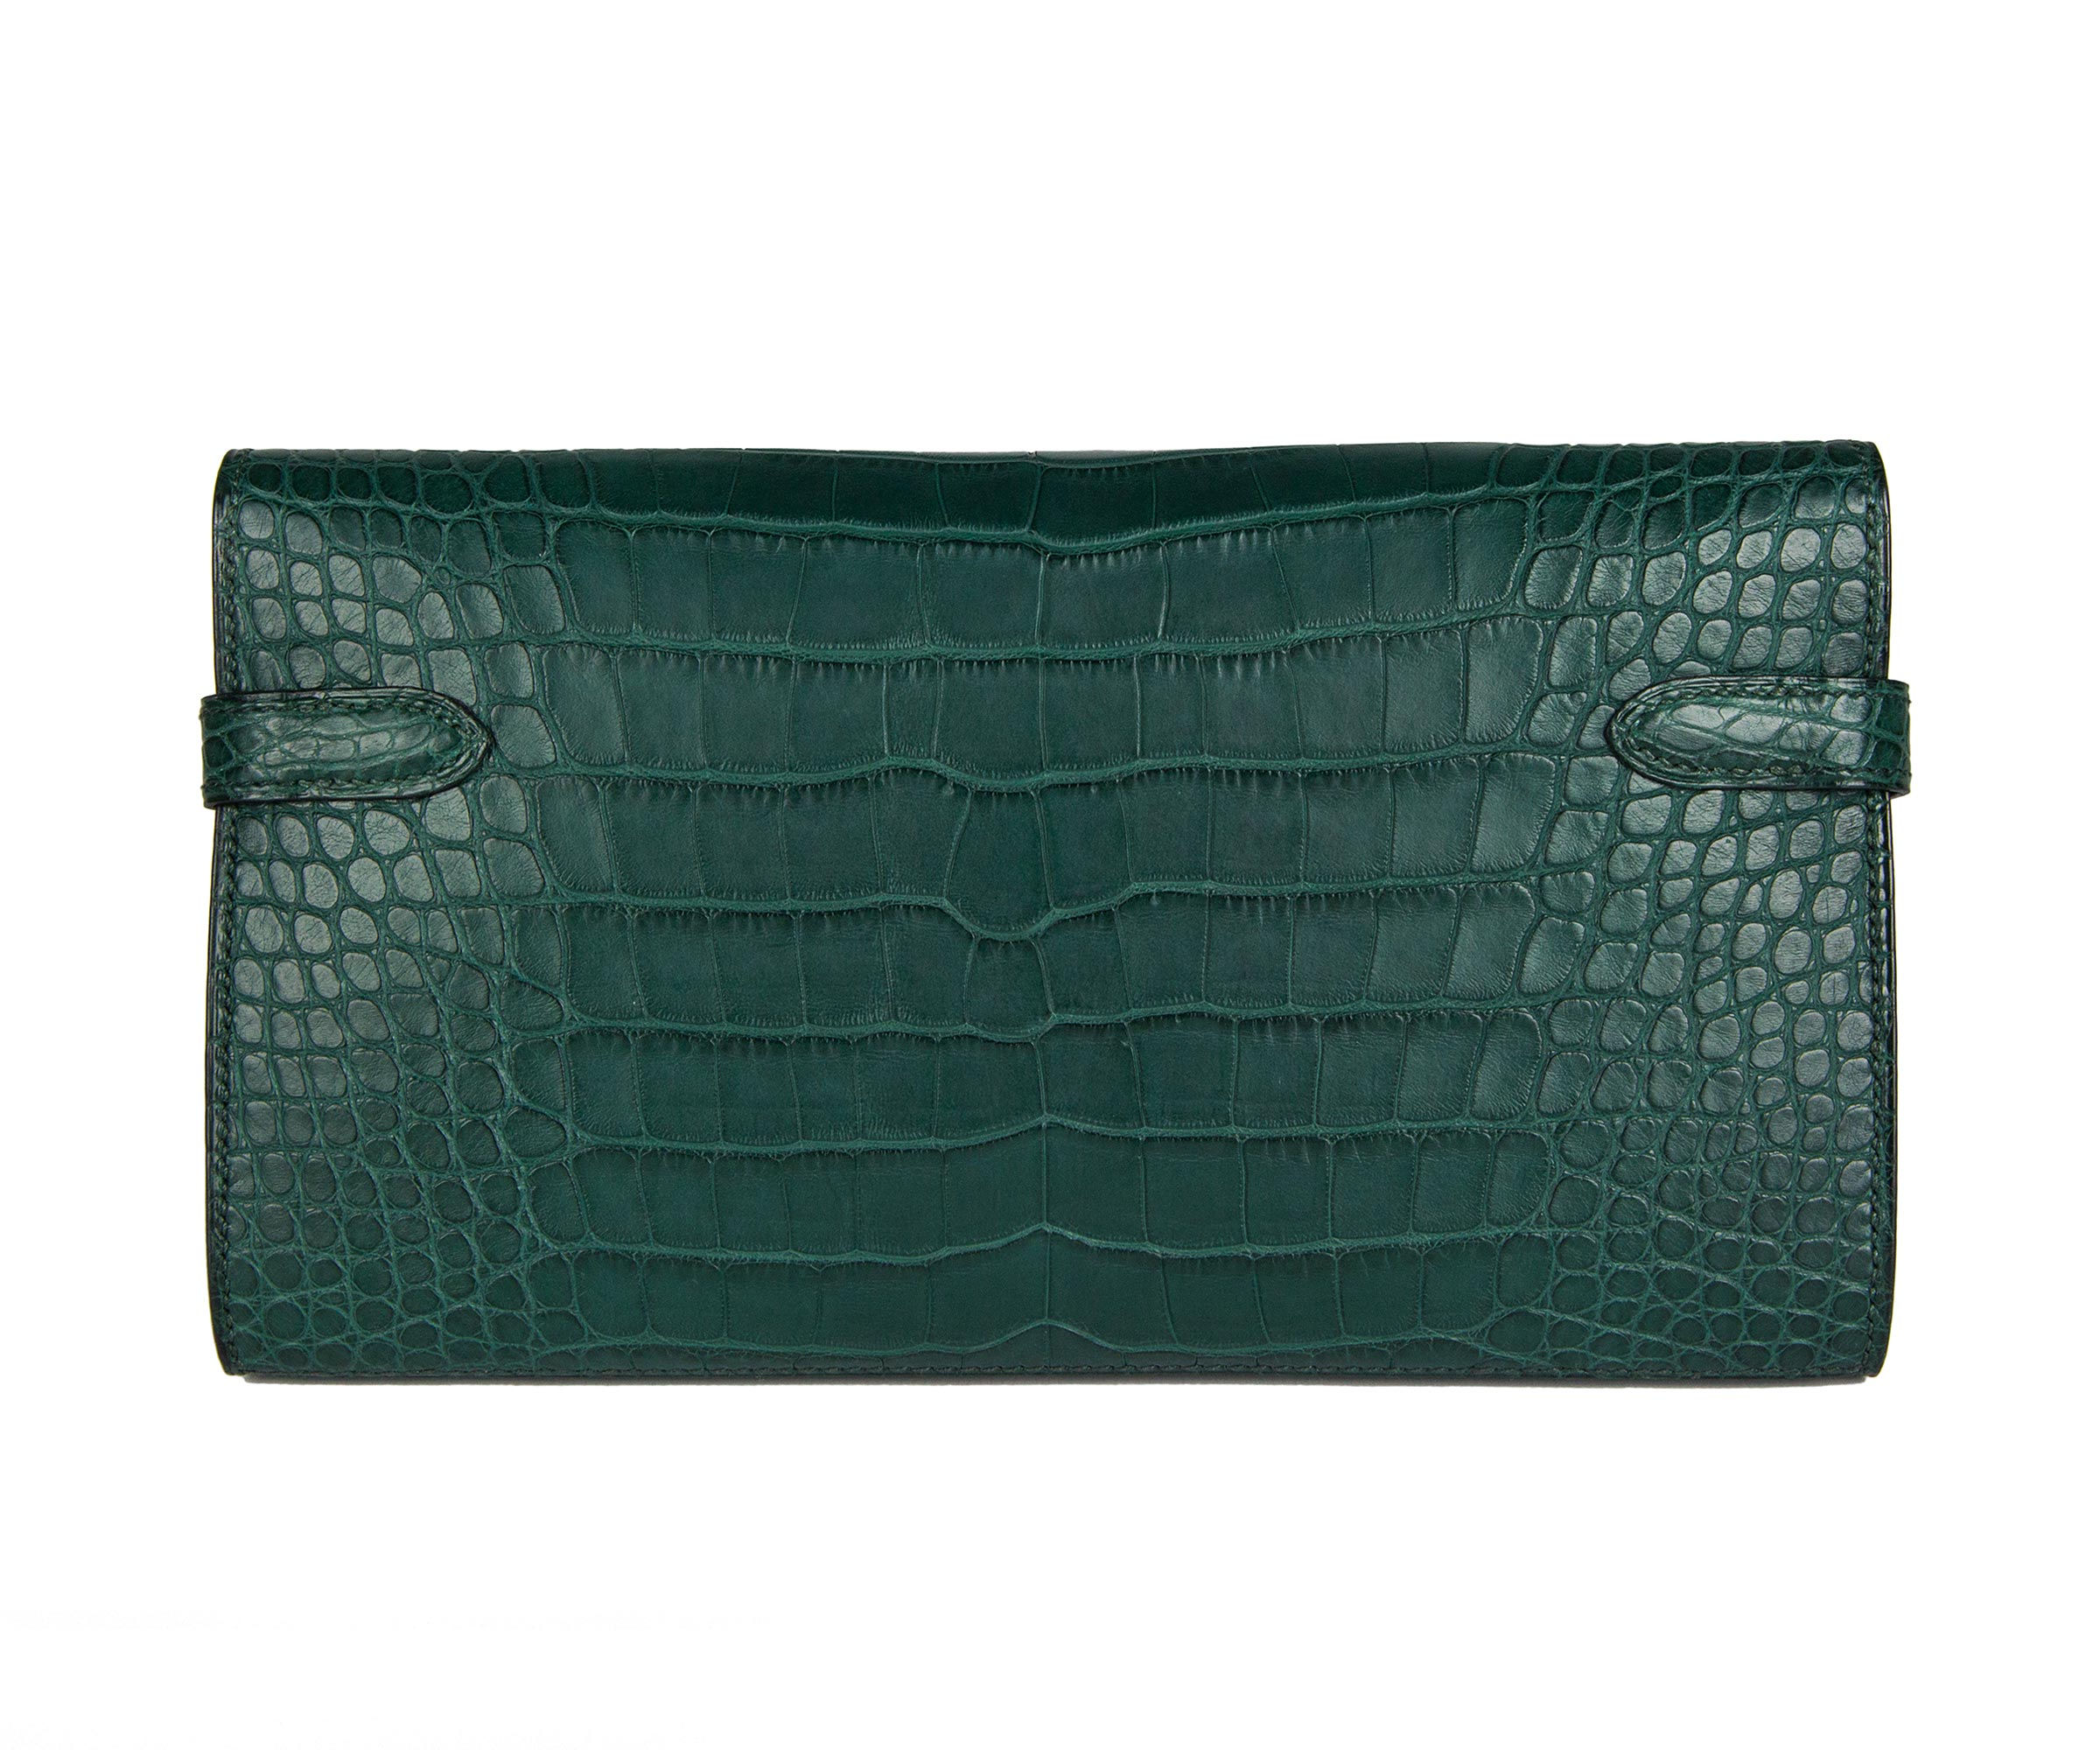 Hermes Kelly Wallet Vert Titian Matt Alligator with Permabrass